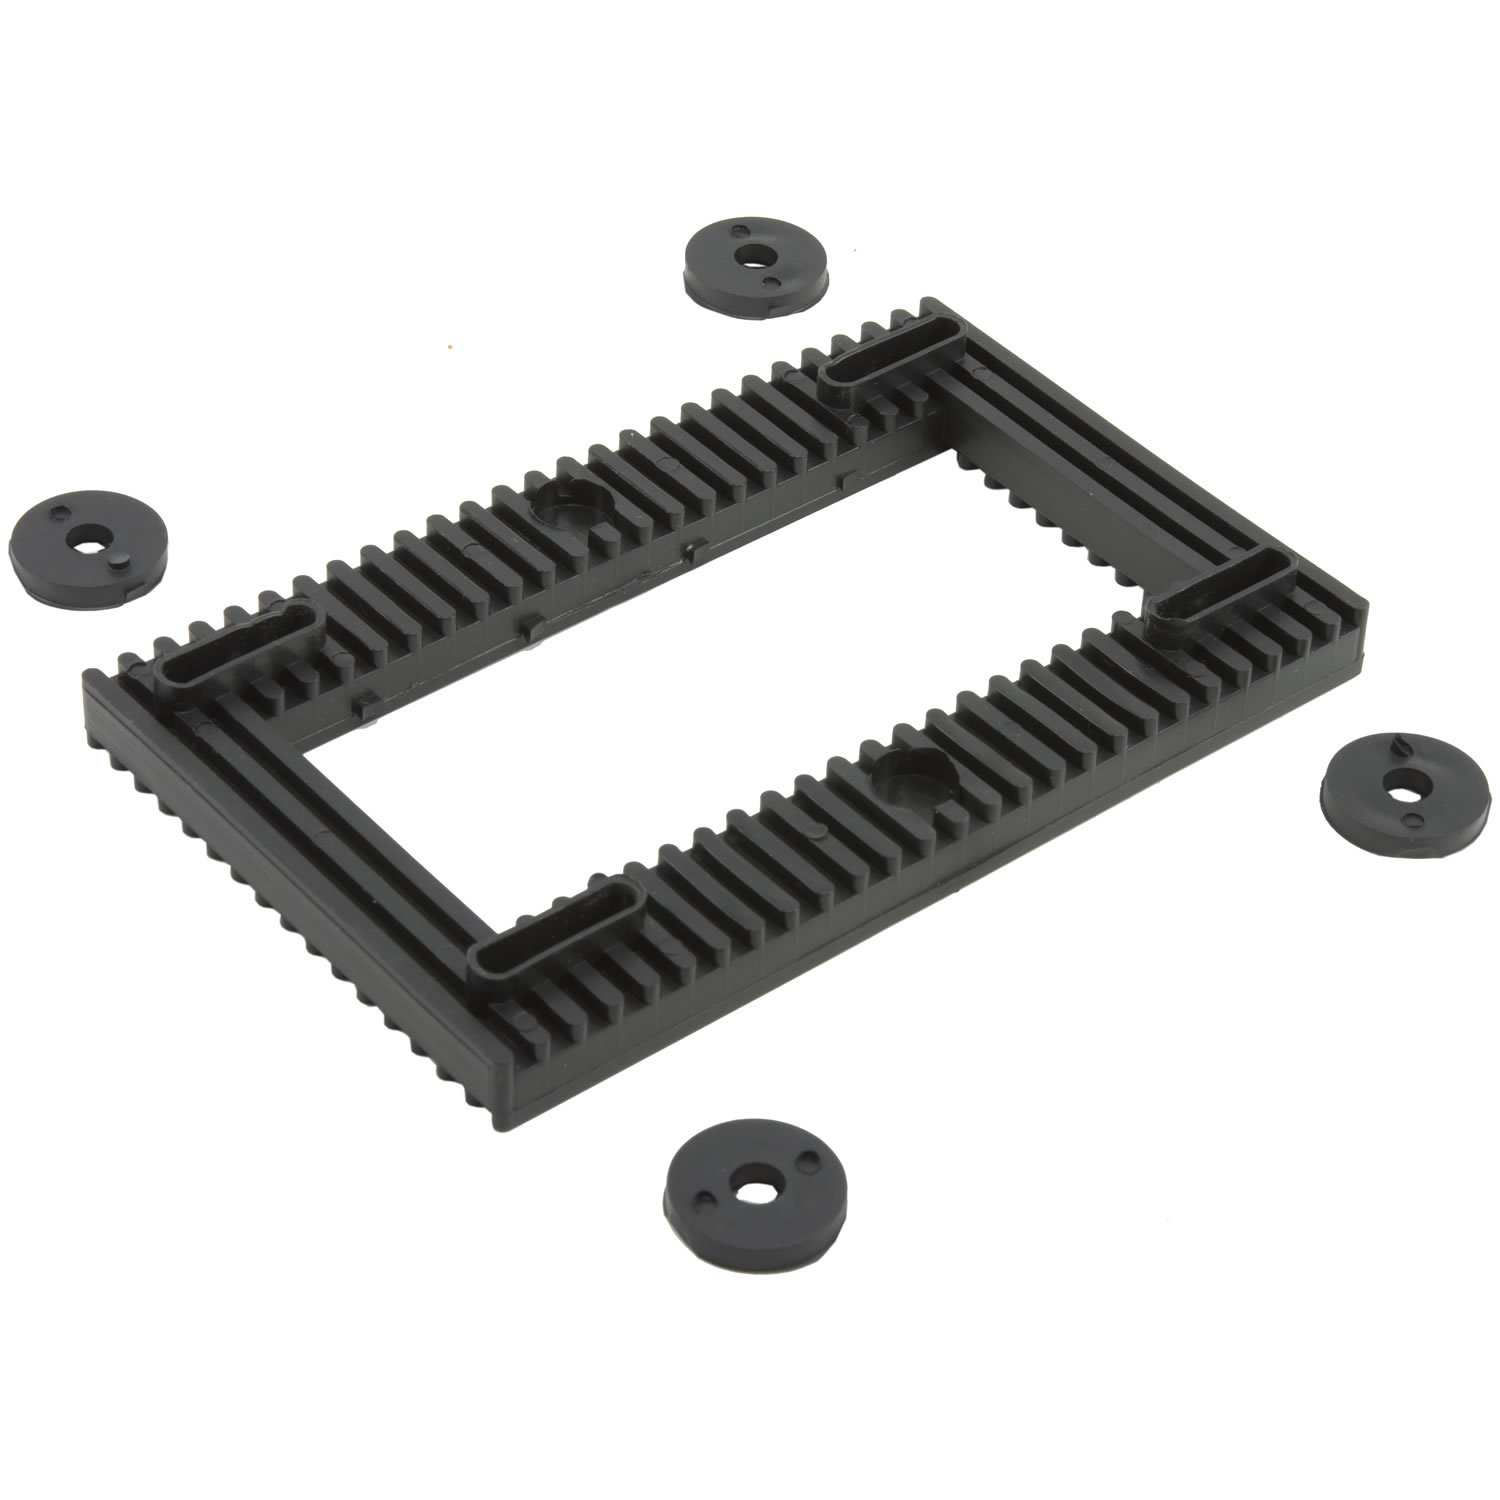 Silencer Anti-Vibration Pump Motor Mount Base Pad for Quiet Hot Tub, Spa - 95% Noise Reduction